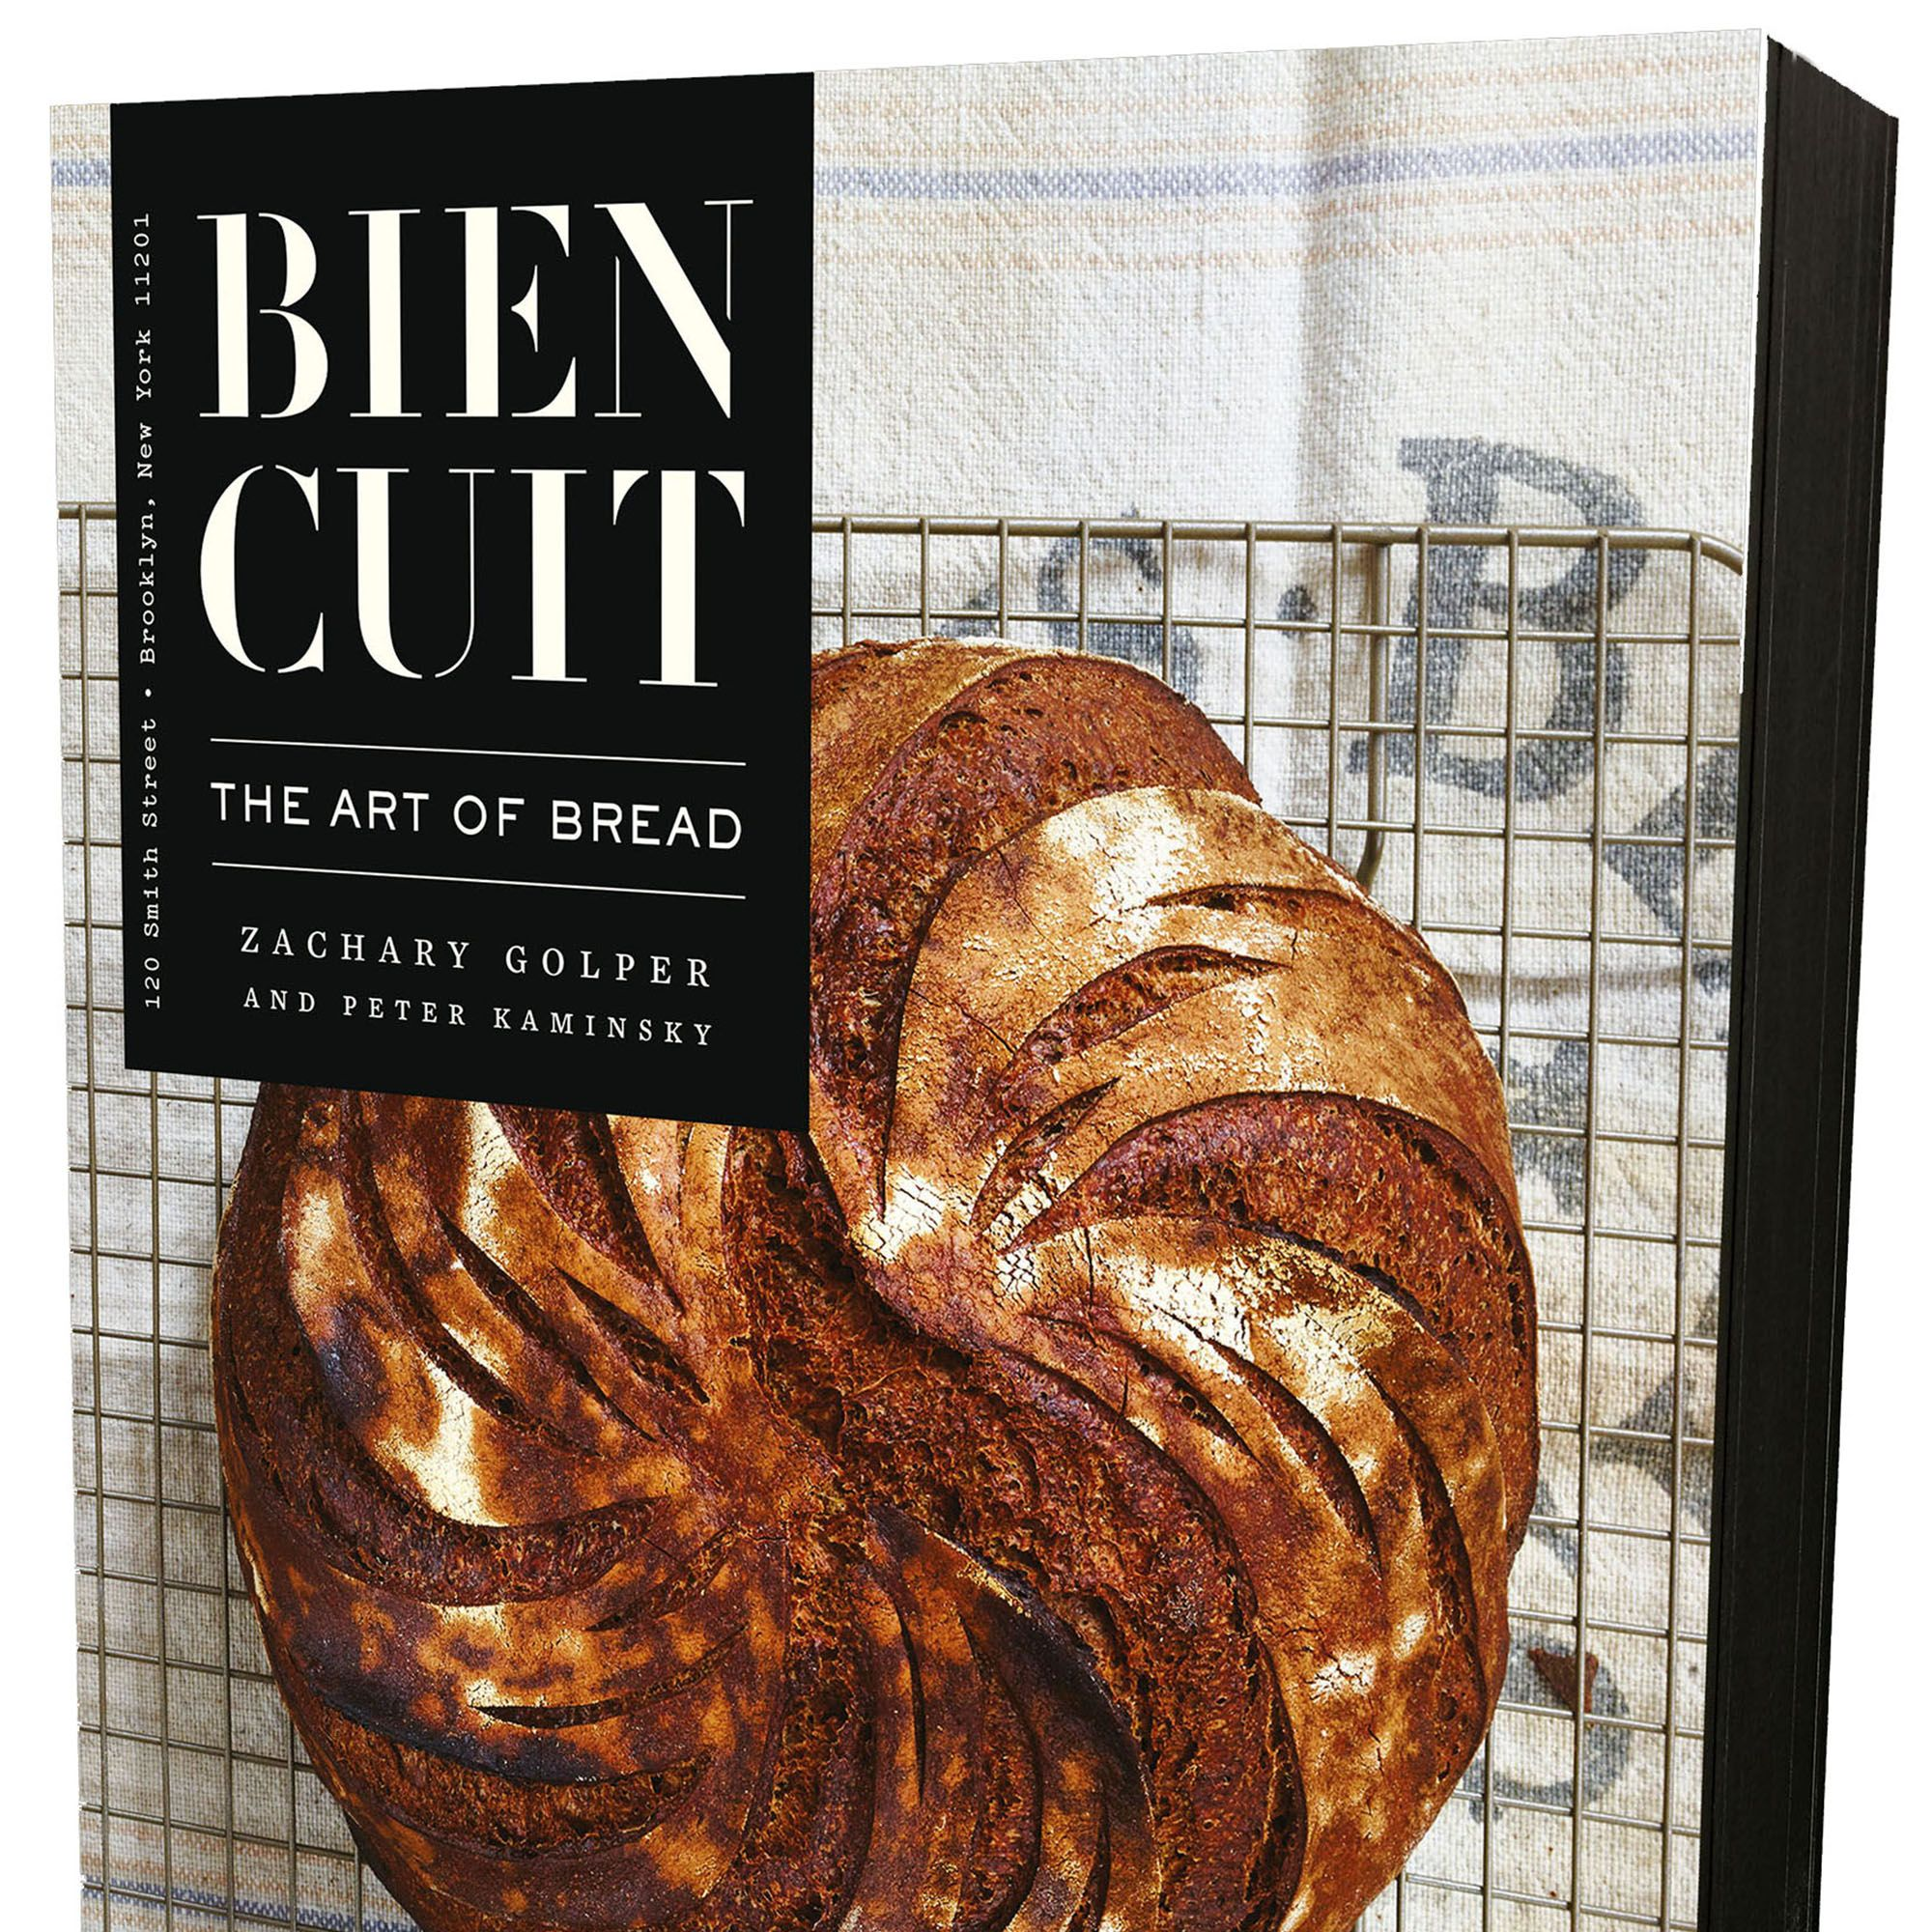 """<p><i>Bien Cuit: The Art of Bread</i> is one cookbook to keep on the coffee table. With its gorgeous photos and insightful recipes both simple and refined (think sun-dried pear and toasted poppy seed mini baguettes or olive bread), Chef Zachary Golper (of Bien Cuit bakery in Brooklyn) guides readers through inspired technique and process.</p><p><em><strong>Bein Cuit: The Art of Bread</strong></em>, $31, <a href=""""http://www.amazon.com/Bien-Cuit-The-Art-Bread/dp/1941393411"""" target=""""_blank"""">amazon.com</a>. </p>"""